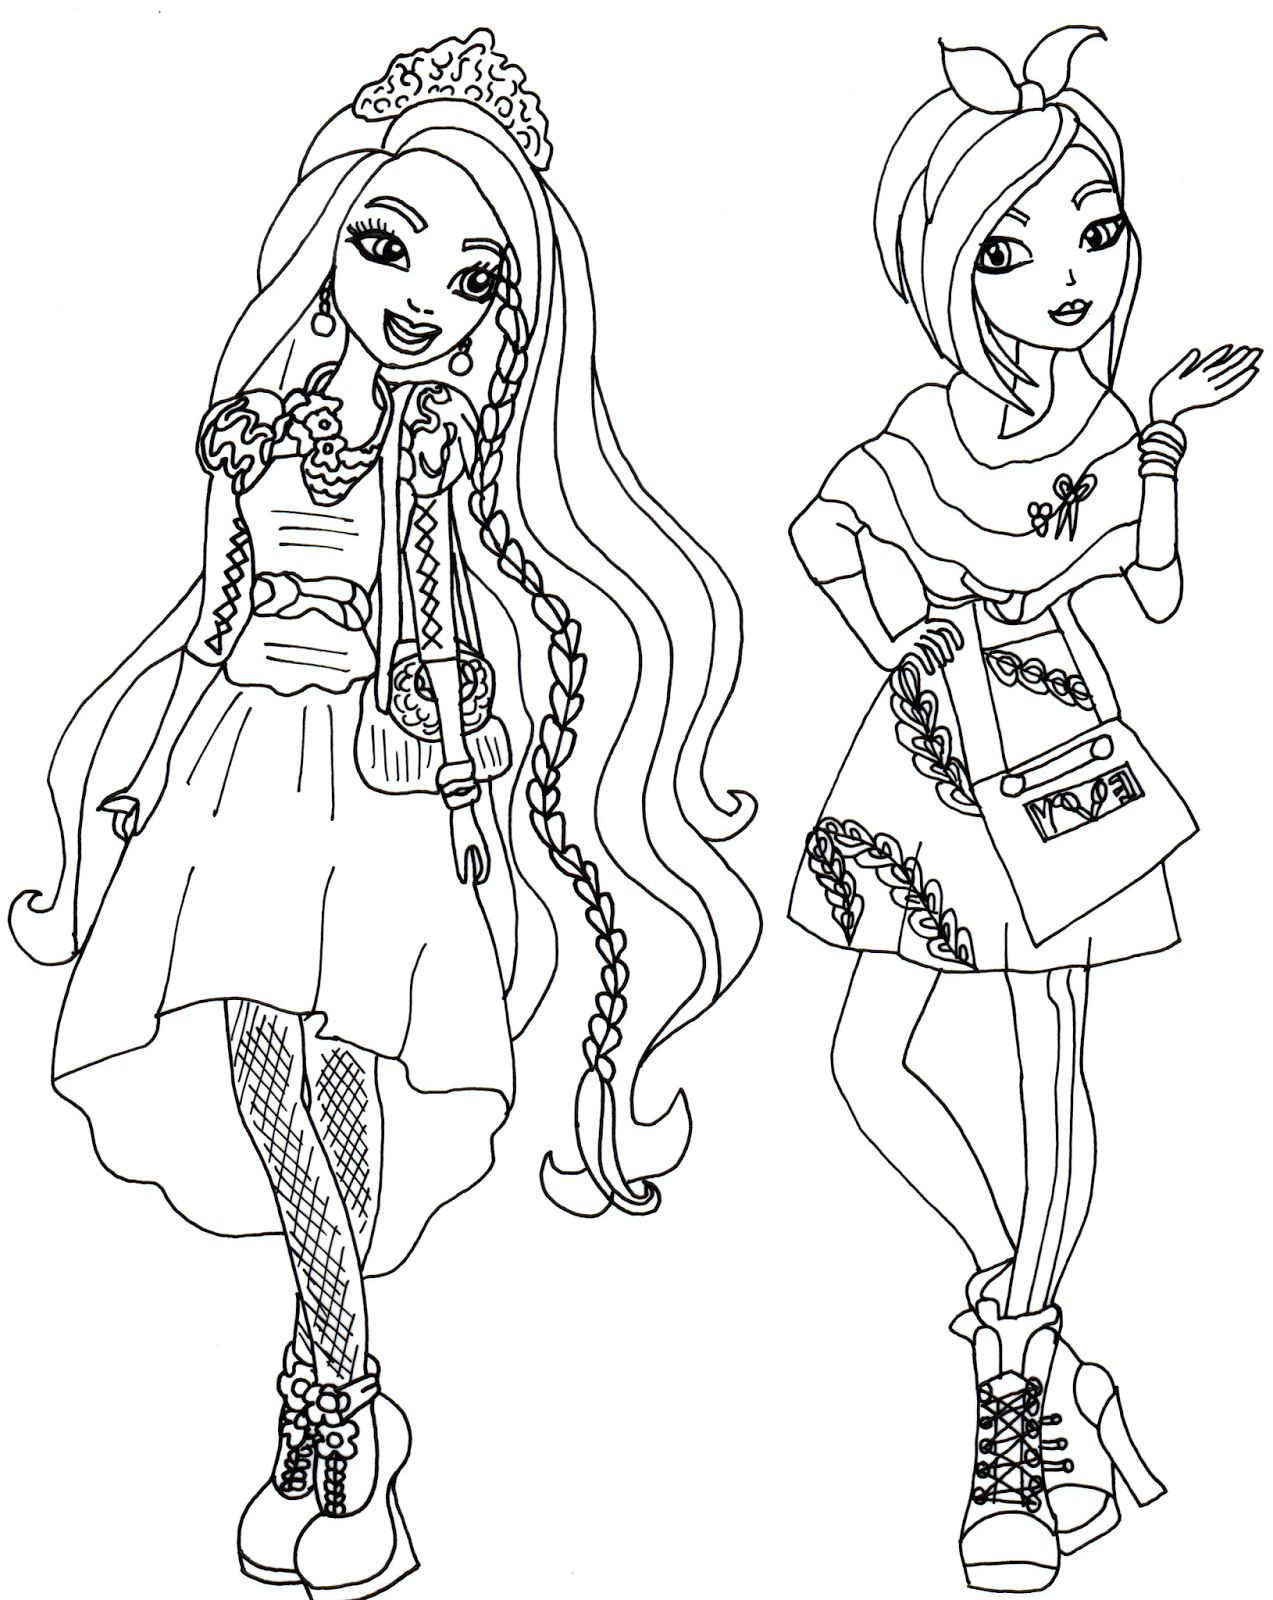 Printable coloring pages ever after high - Free Printable Ever After High Coloring Pages